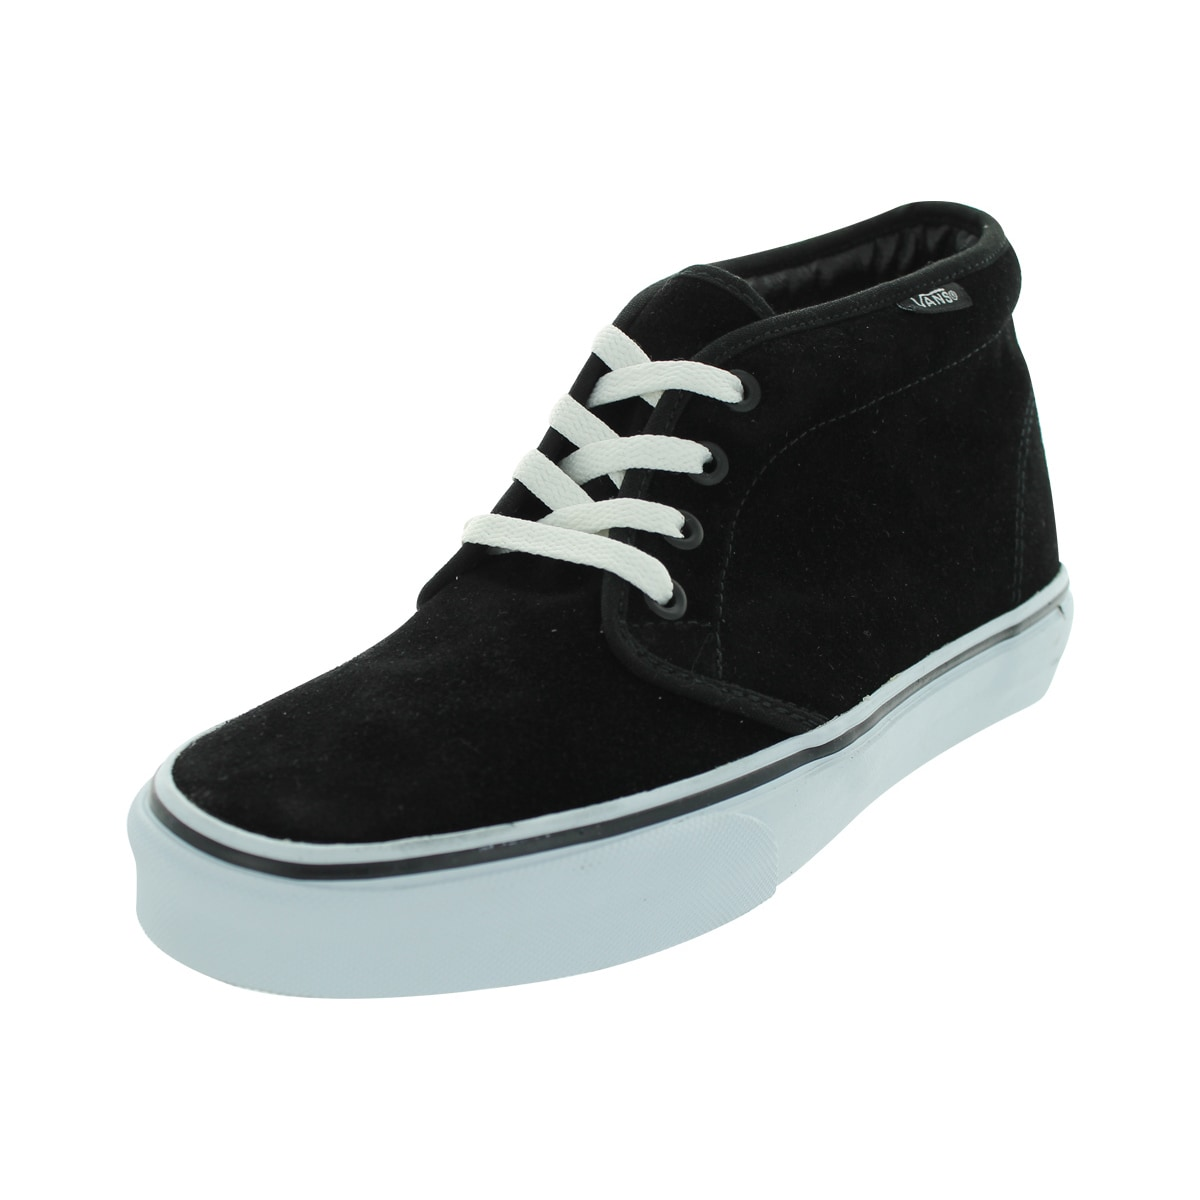 c0983f982c Shop Vans Men s Chukka Black White Suede Boot - Free Shipping Today ...